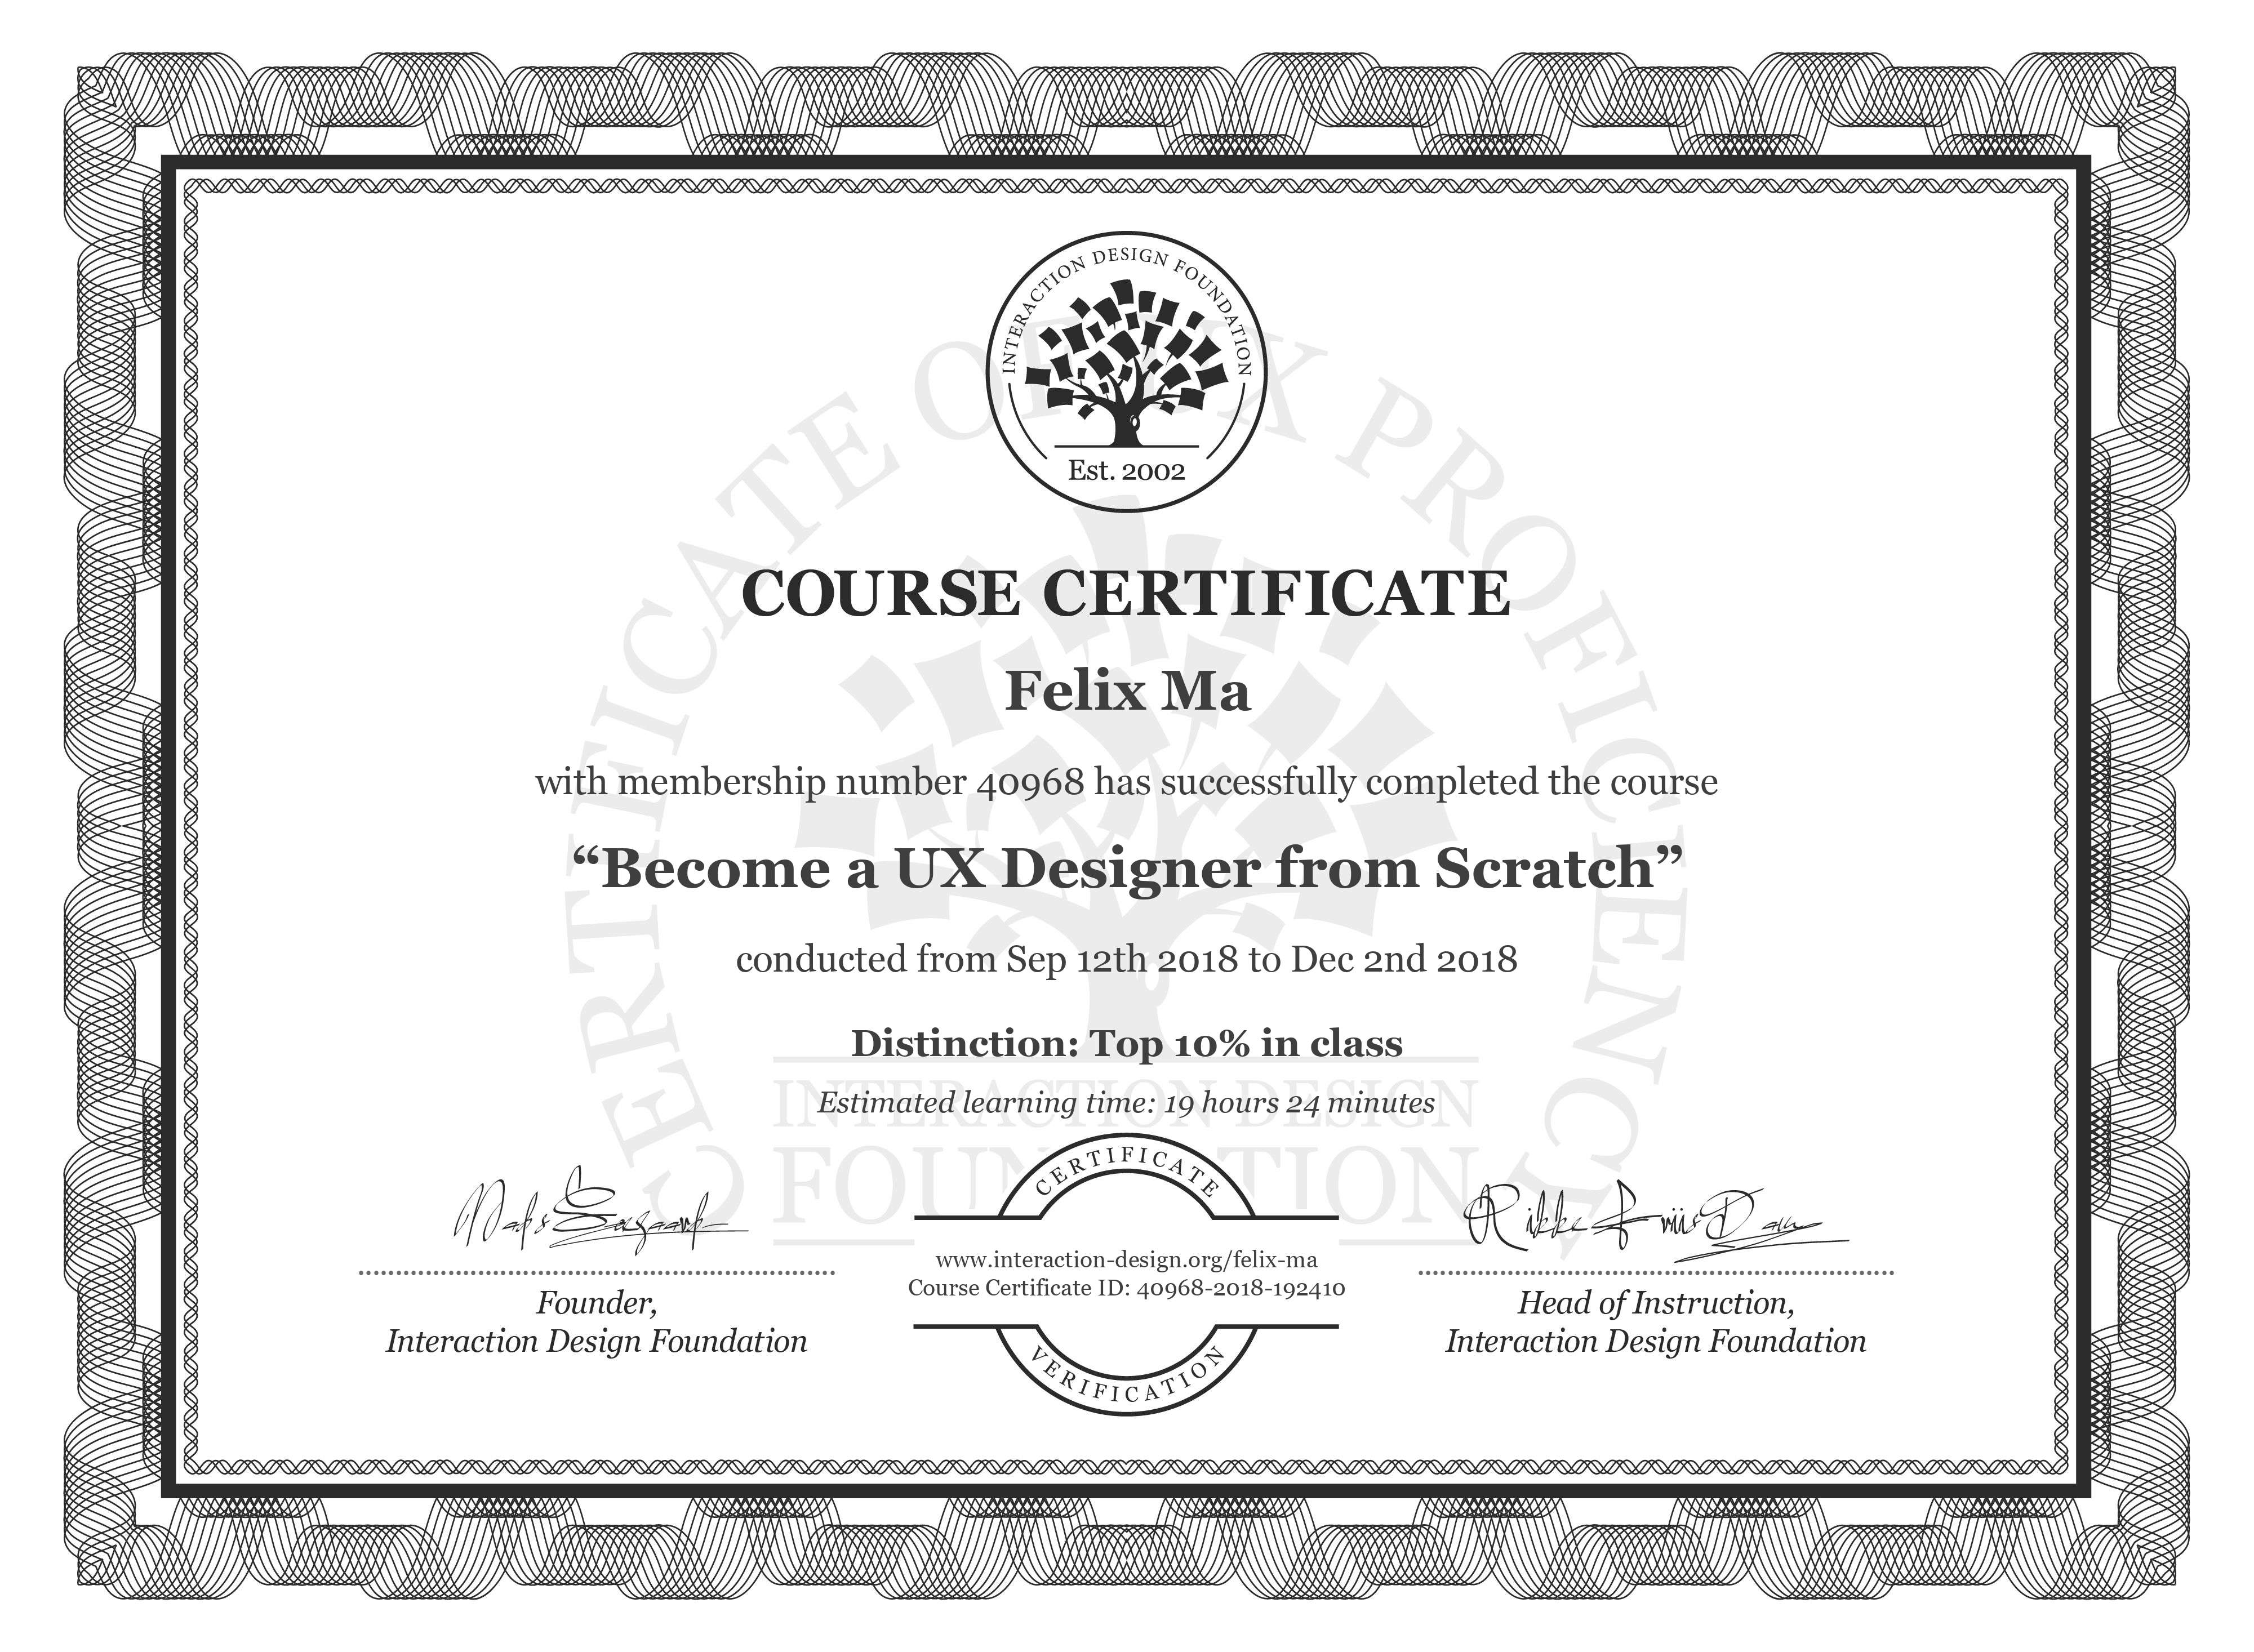 Felix Ma's Course Certificate: User Experience: The Beginner's Guide